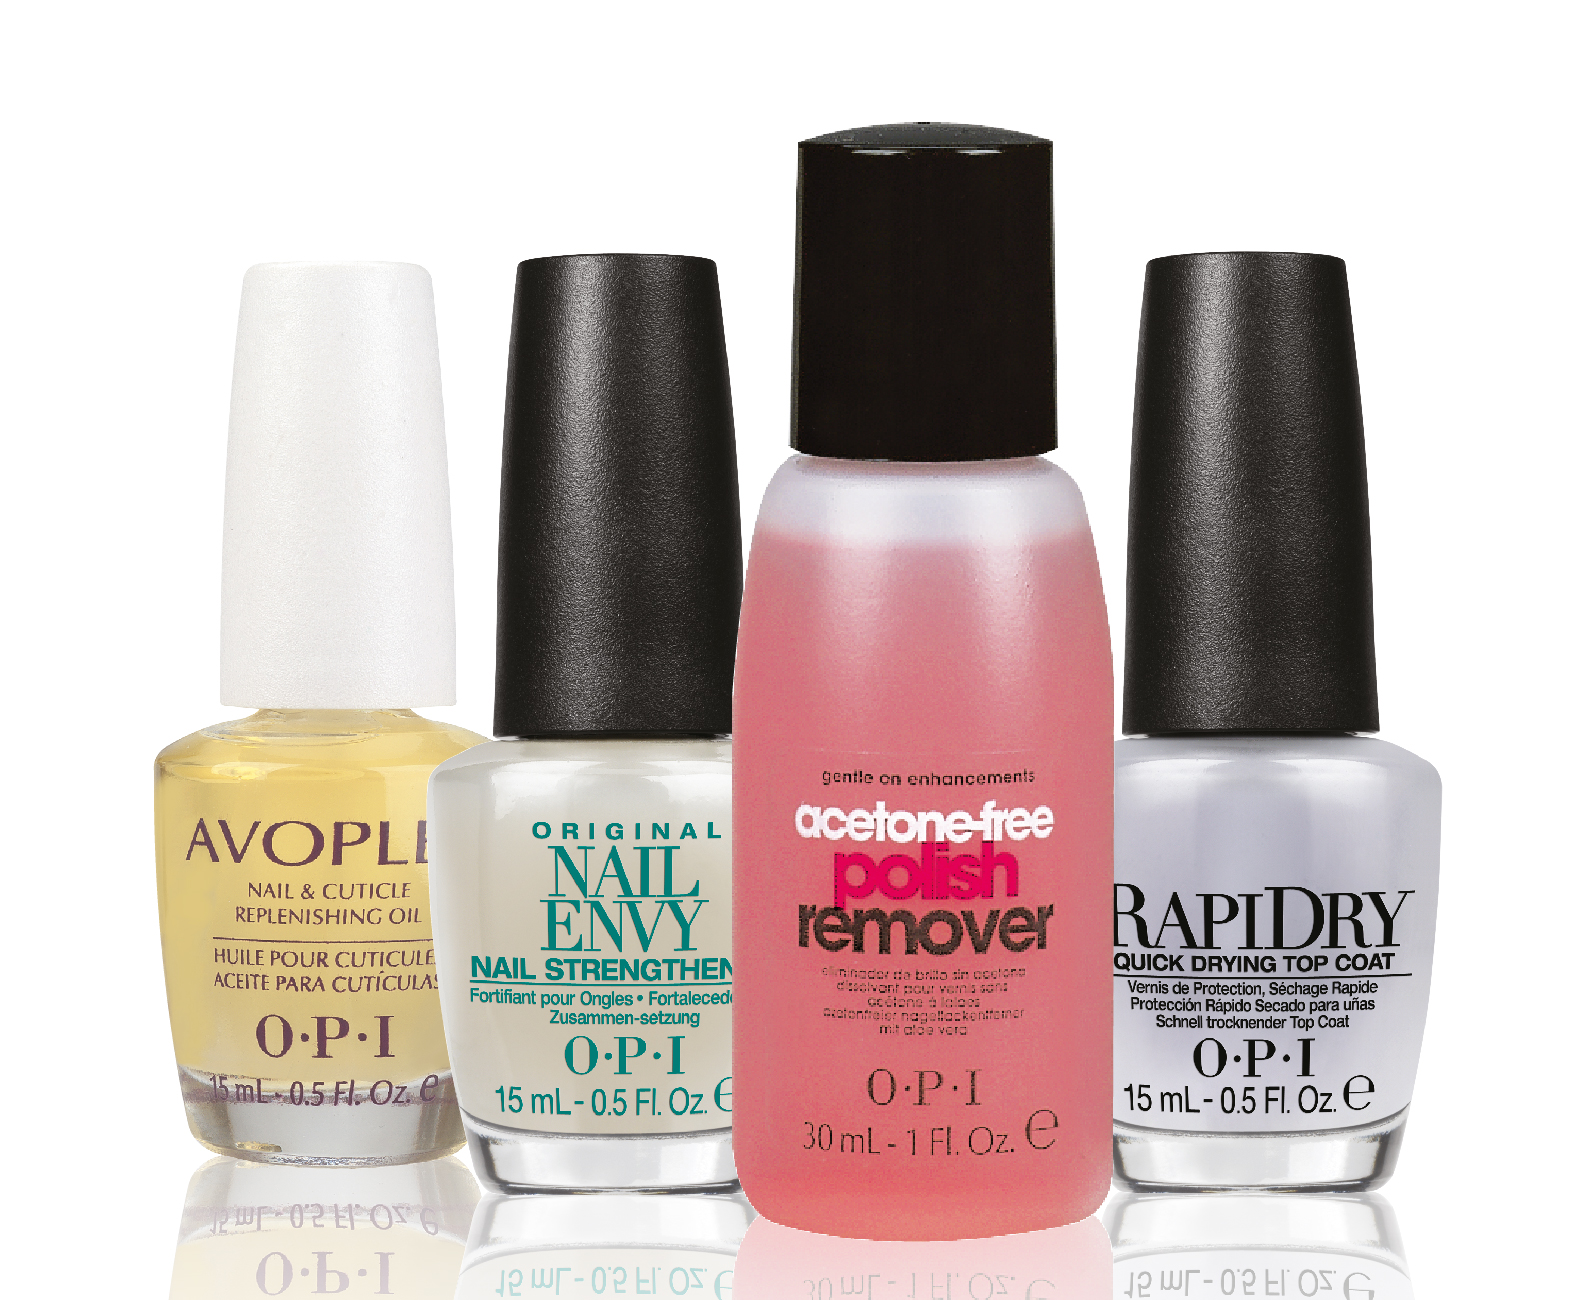 OPI Nail Polish | LookFantastic